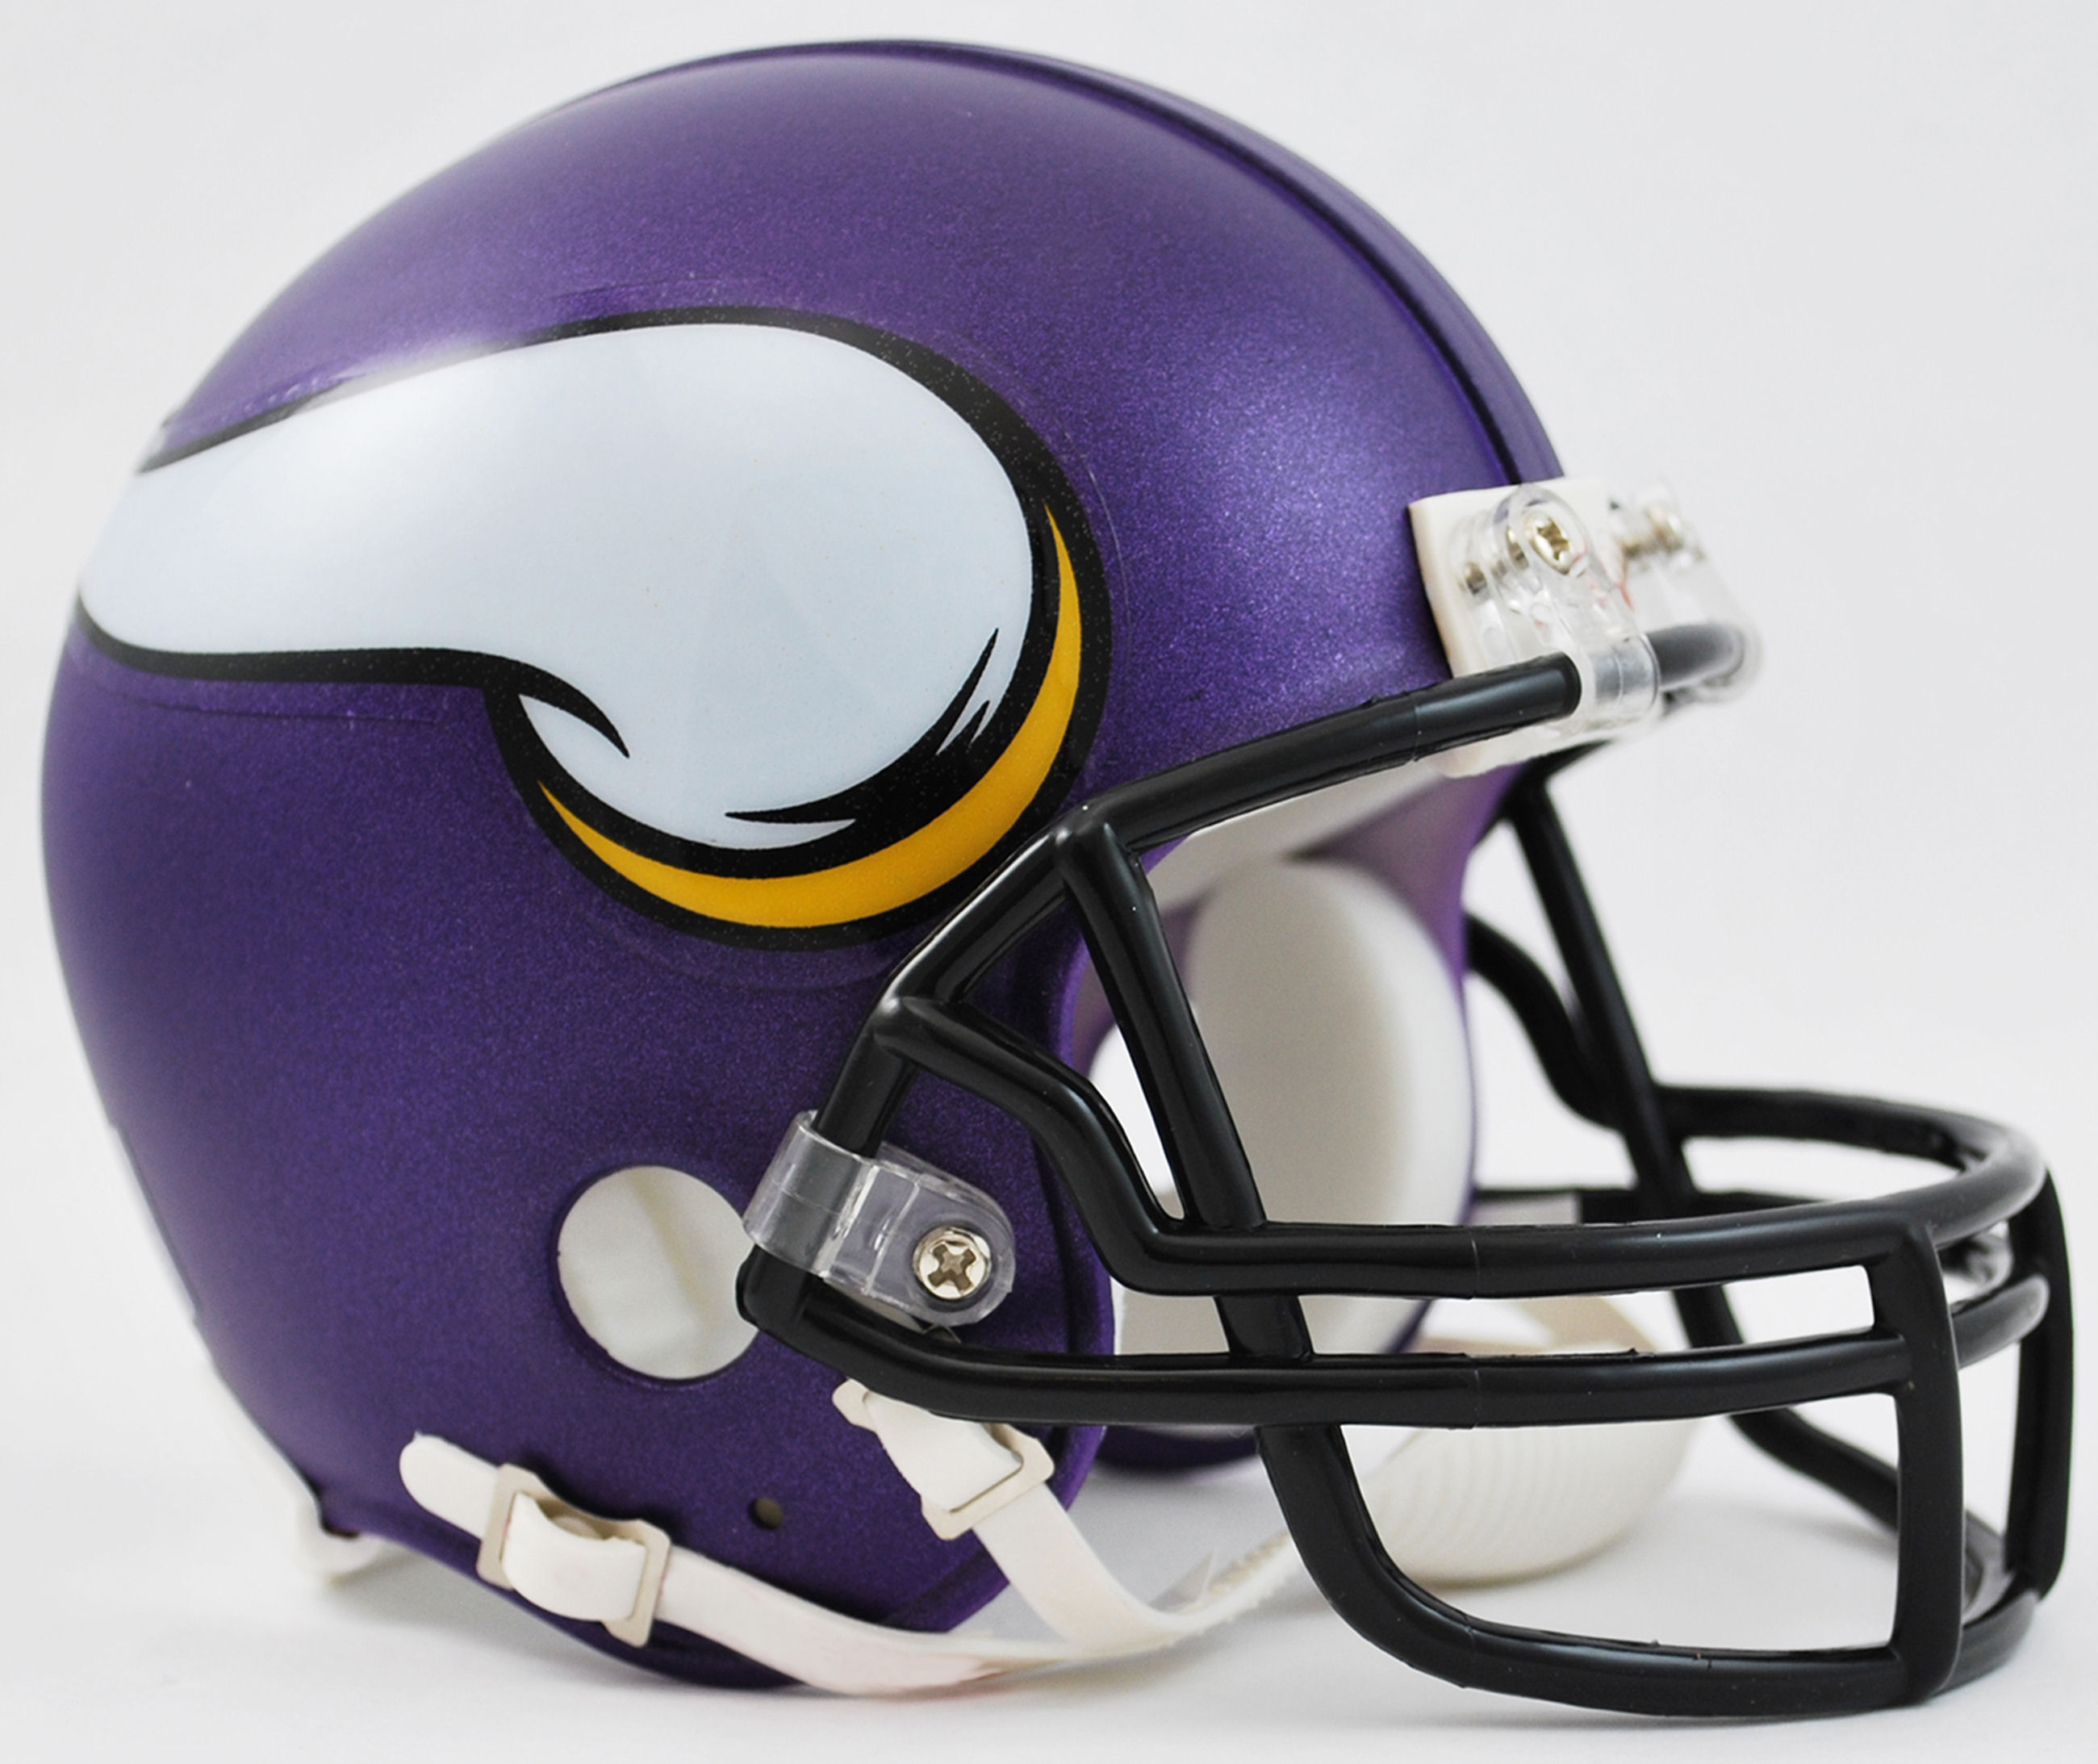 Minnesota Vikings NFL Mini Football Helmet <B>Satin Purple</B>